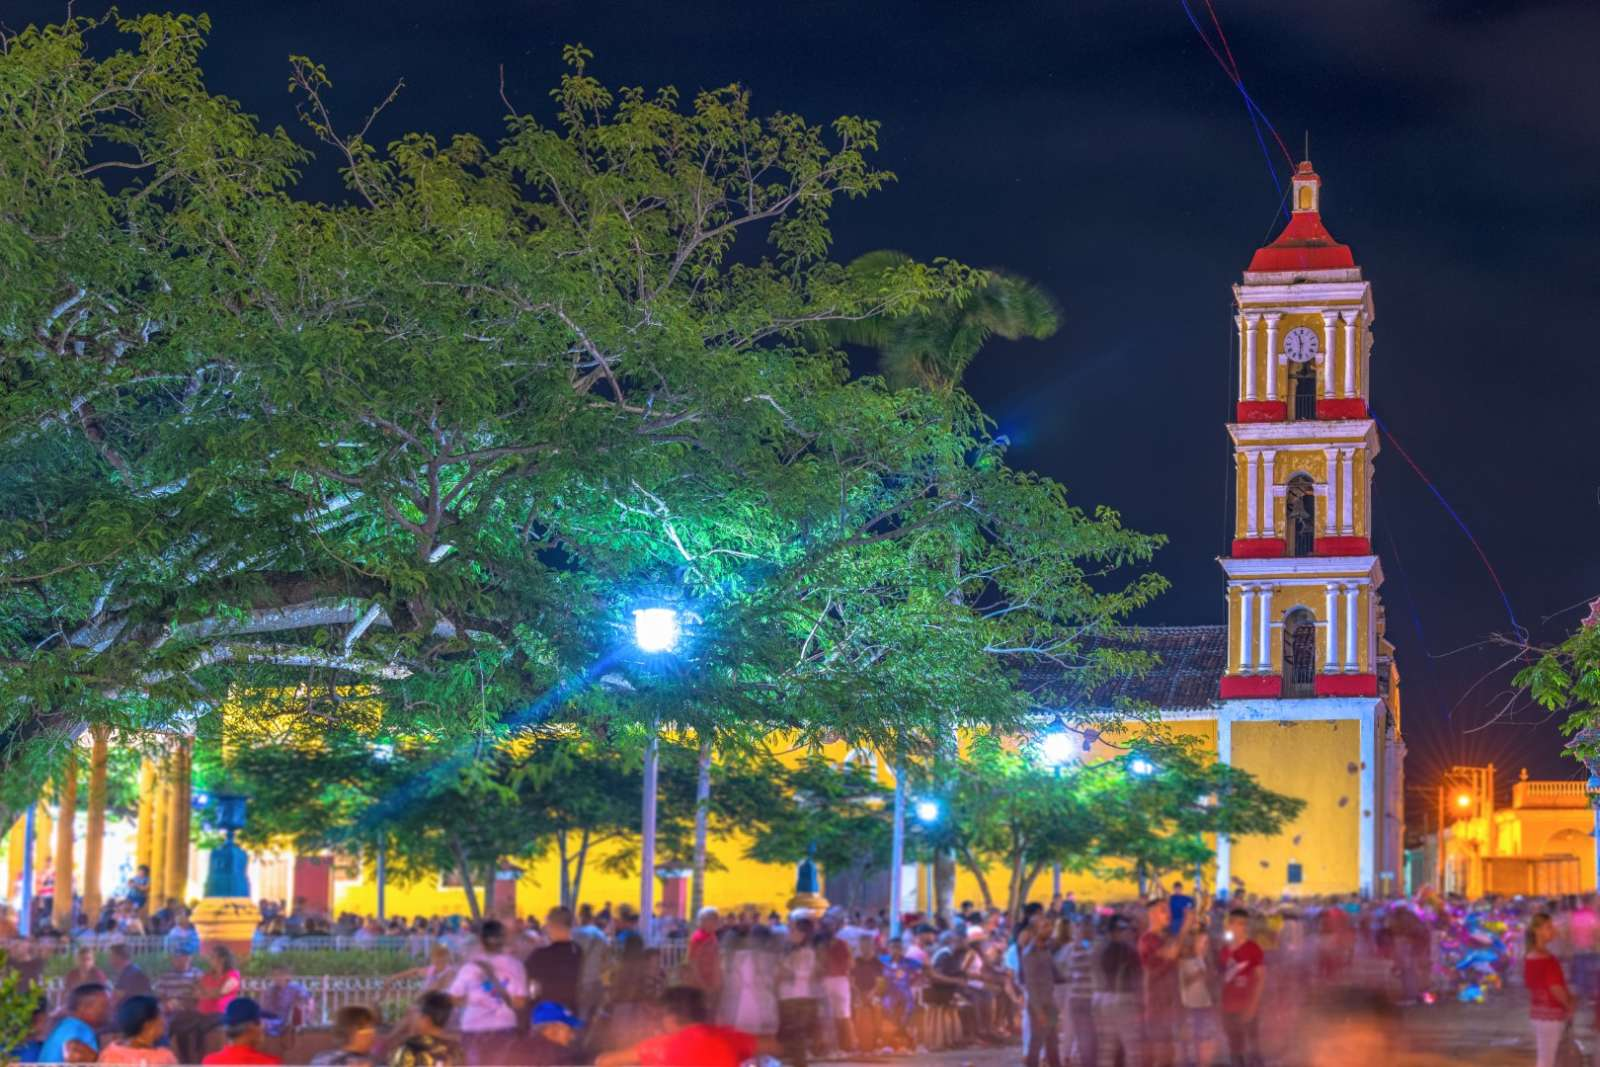 Evening crowd during Las Parrandas in Remedios, Cuba